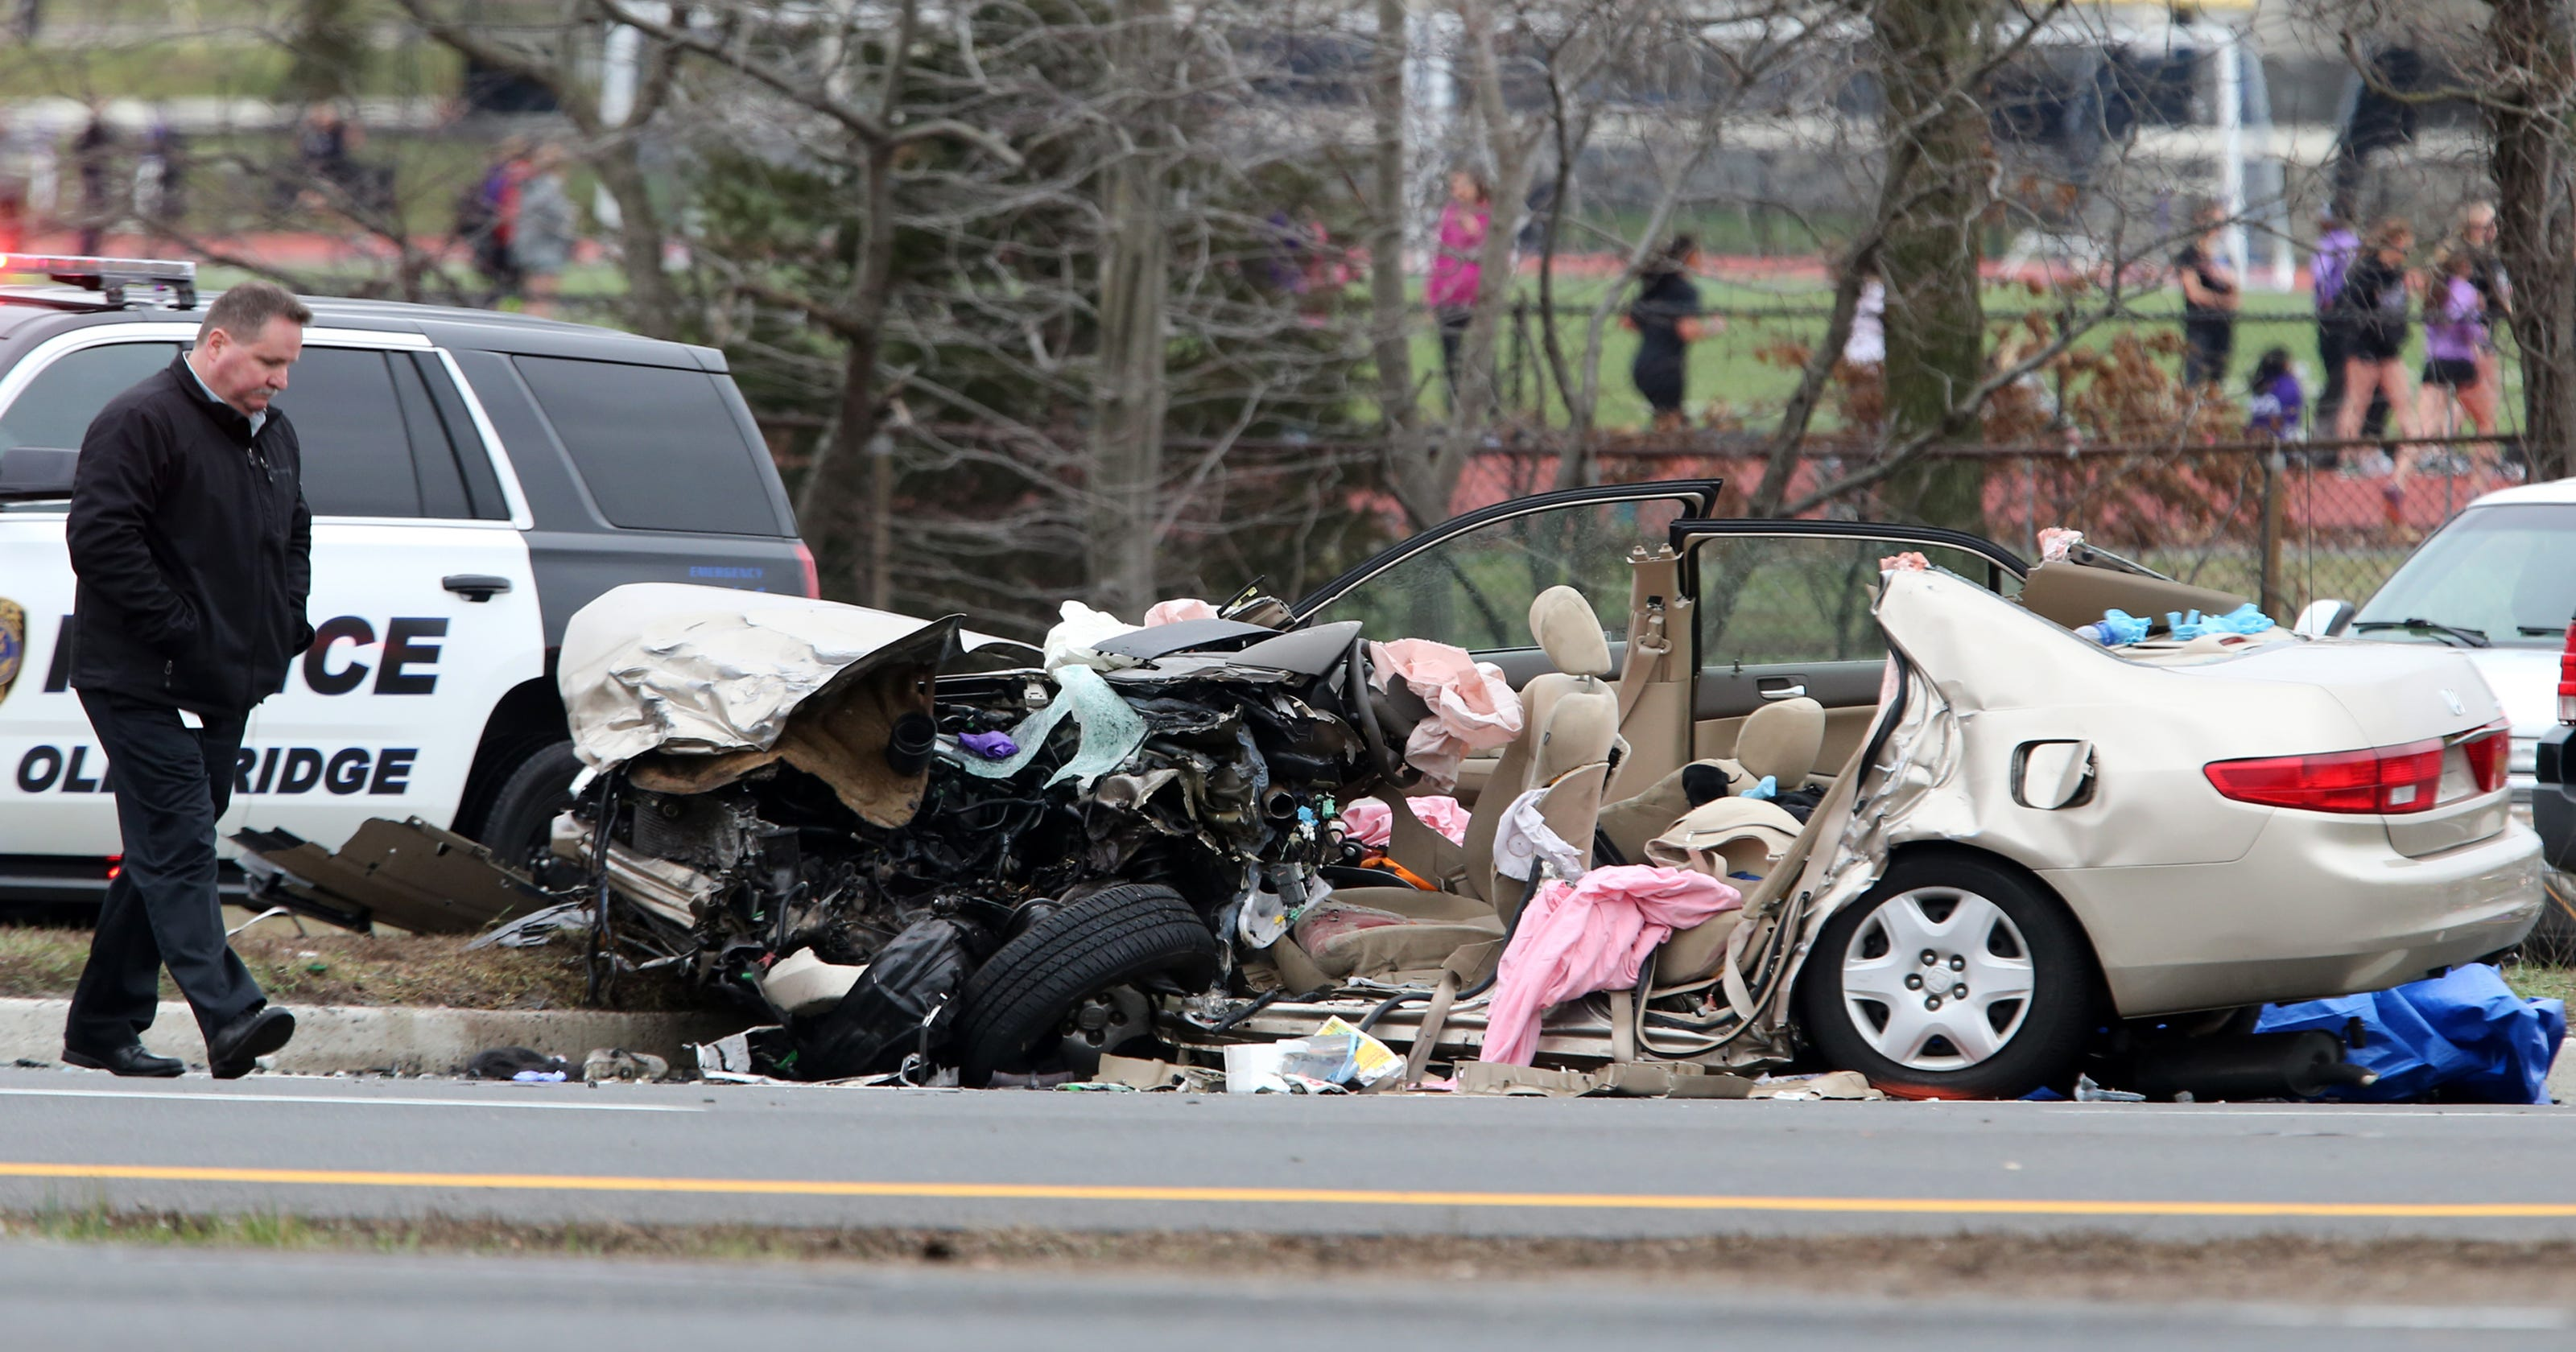 3 killed, 2 injured in Route 9 head-on collision in Old Bridge